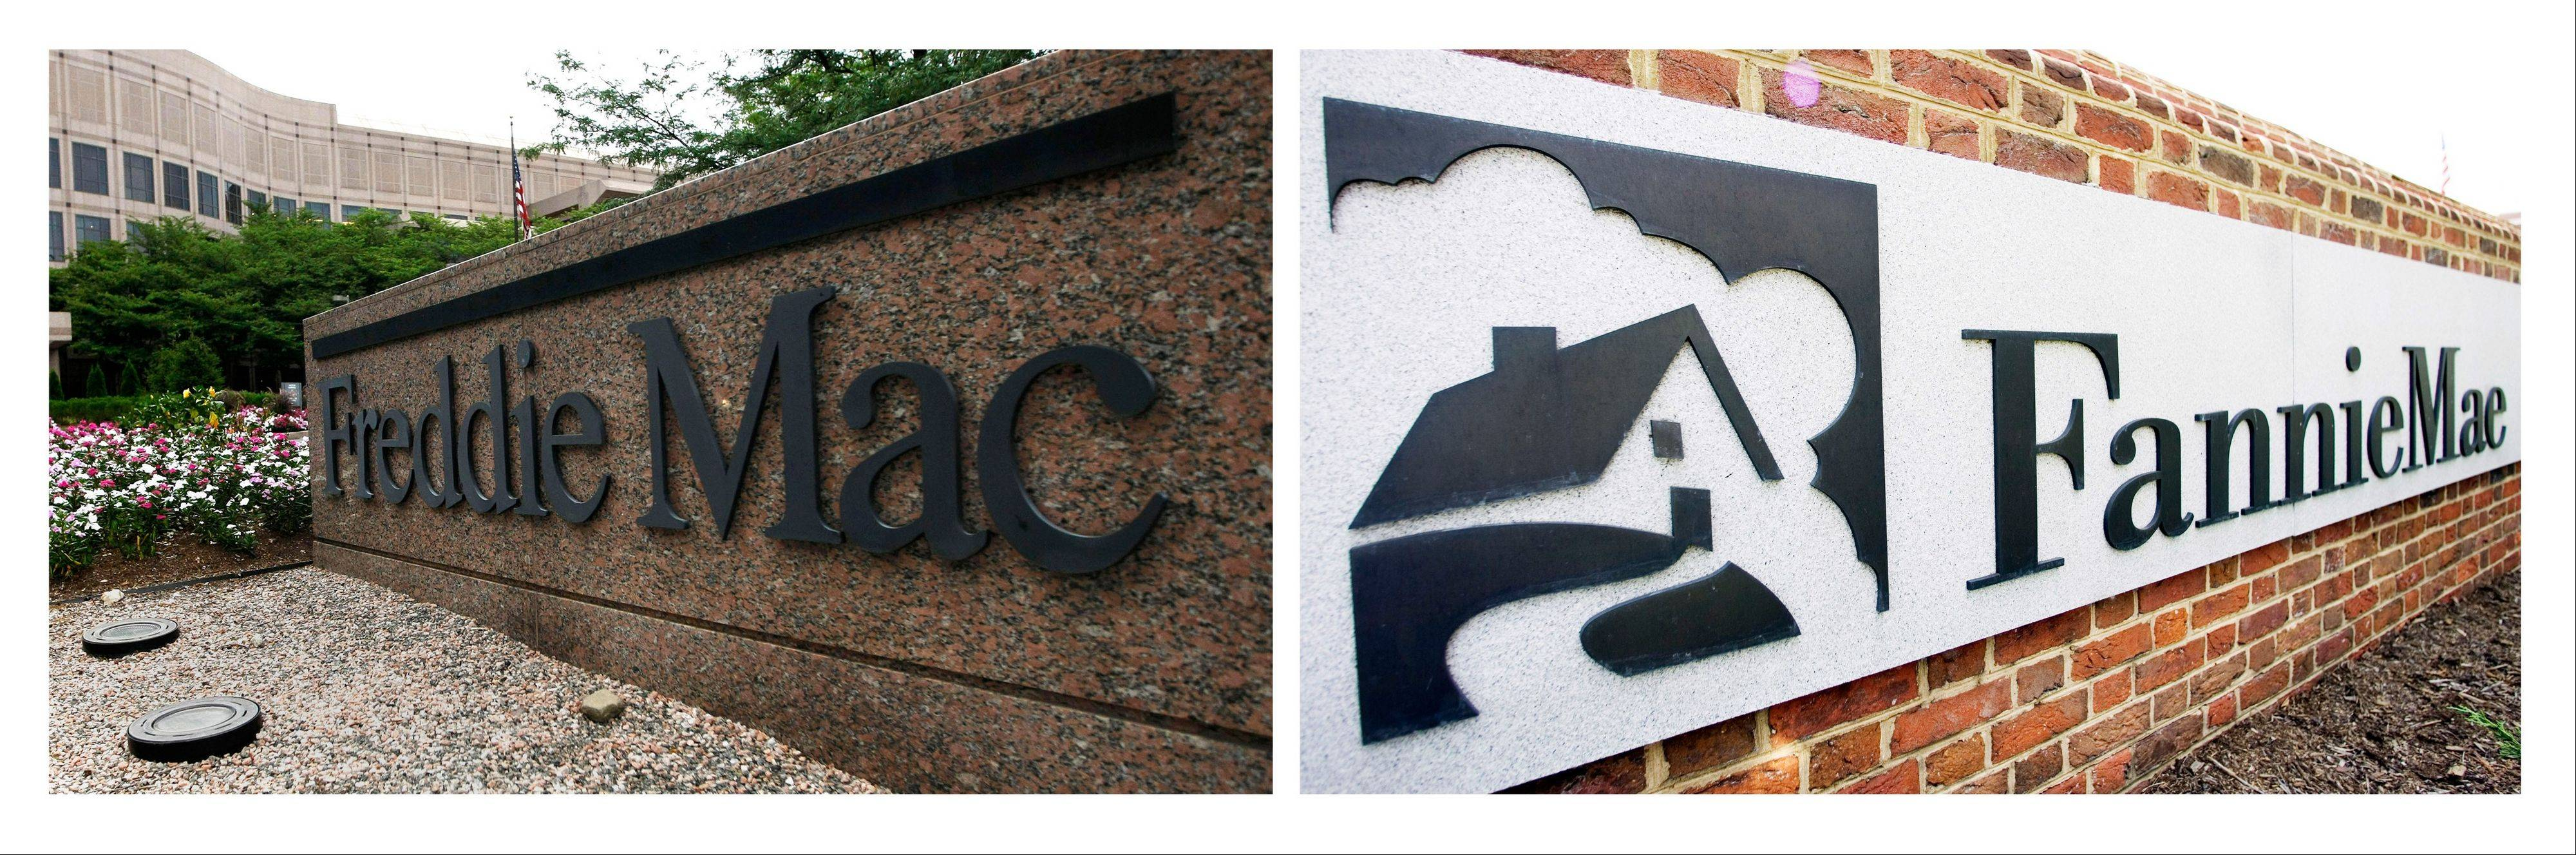 The government is changing the terms of its bailout agreement with Fannie Mae and Freddie Mac in a way that will shrink the holdings of the two mortgage giants more quickly and will require payment to the government of all quarterly profits the companies earn.